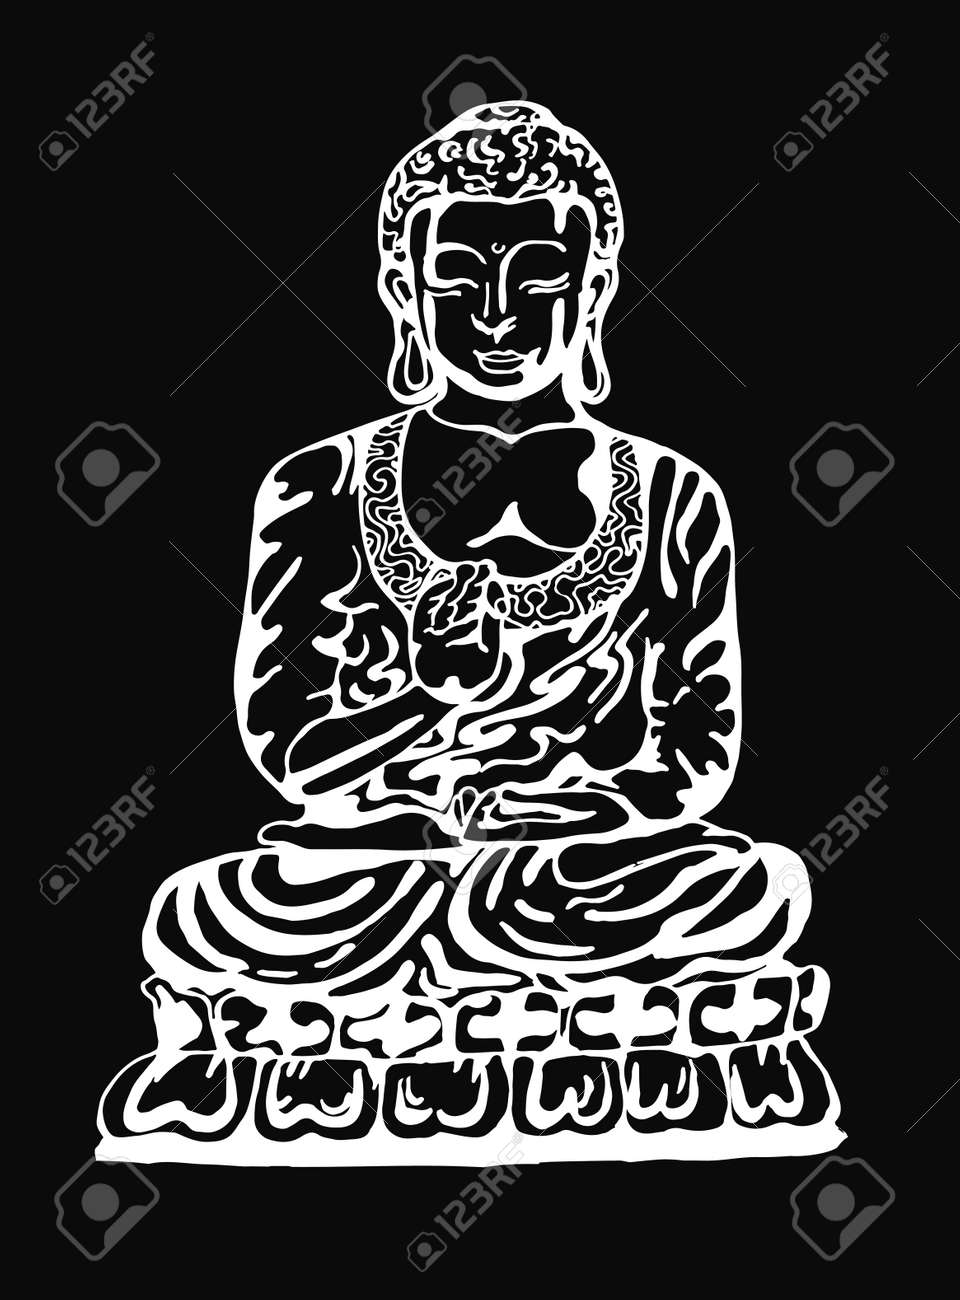 Buddha in meditation in the style of street art vector illustration of a black and